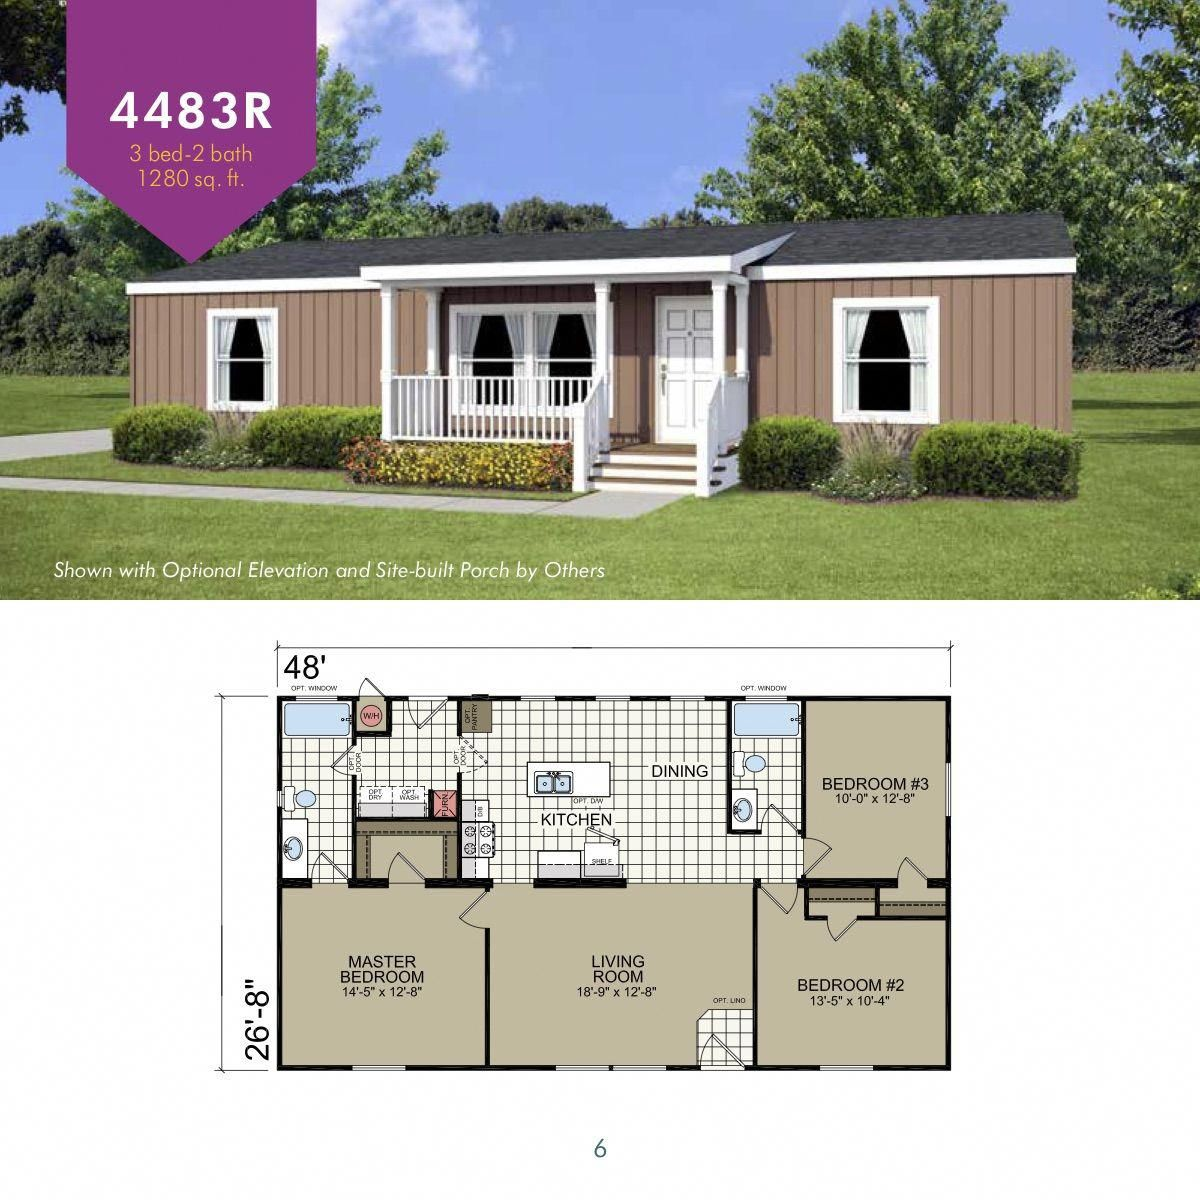 Pin By Lee Nohra On Grannyflat Bedroom House Plans House Design Pictures Small House Plans